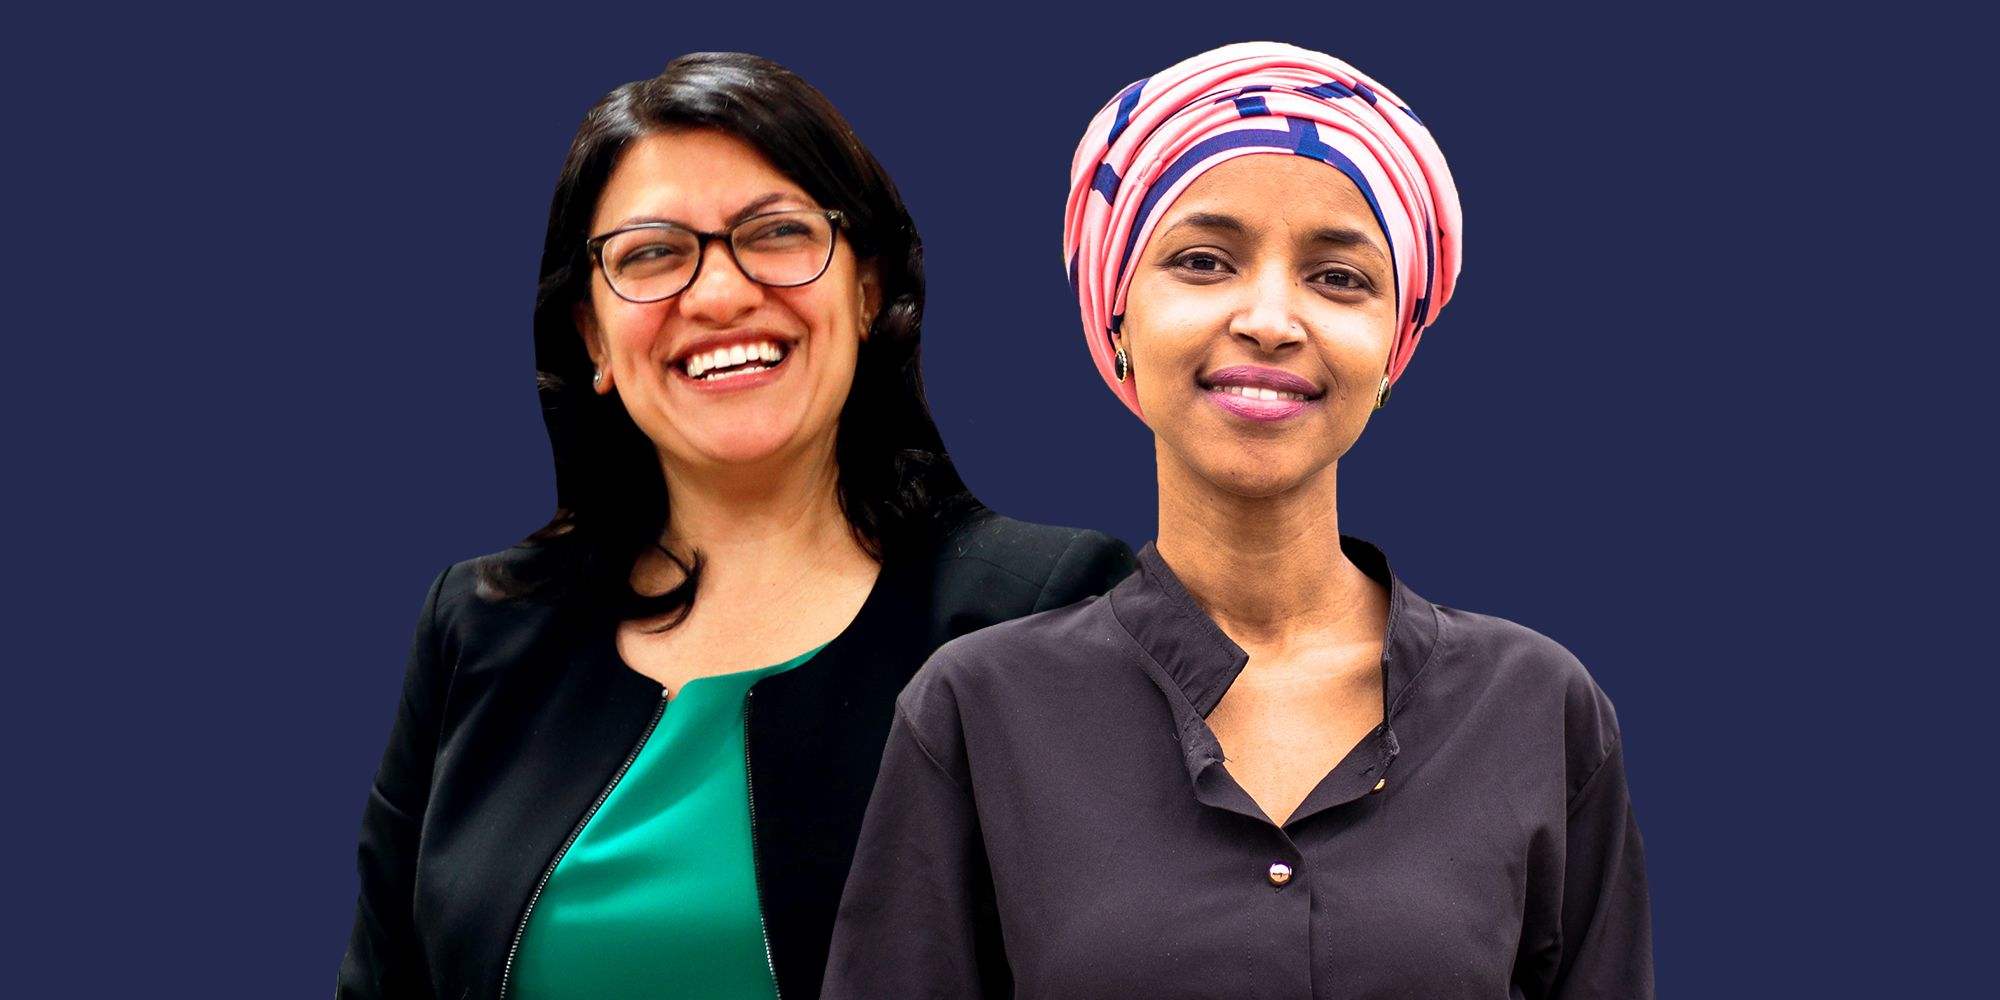 Image result for Ilhan Omar and Rashida Tlaib